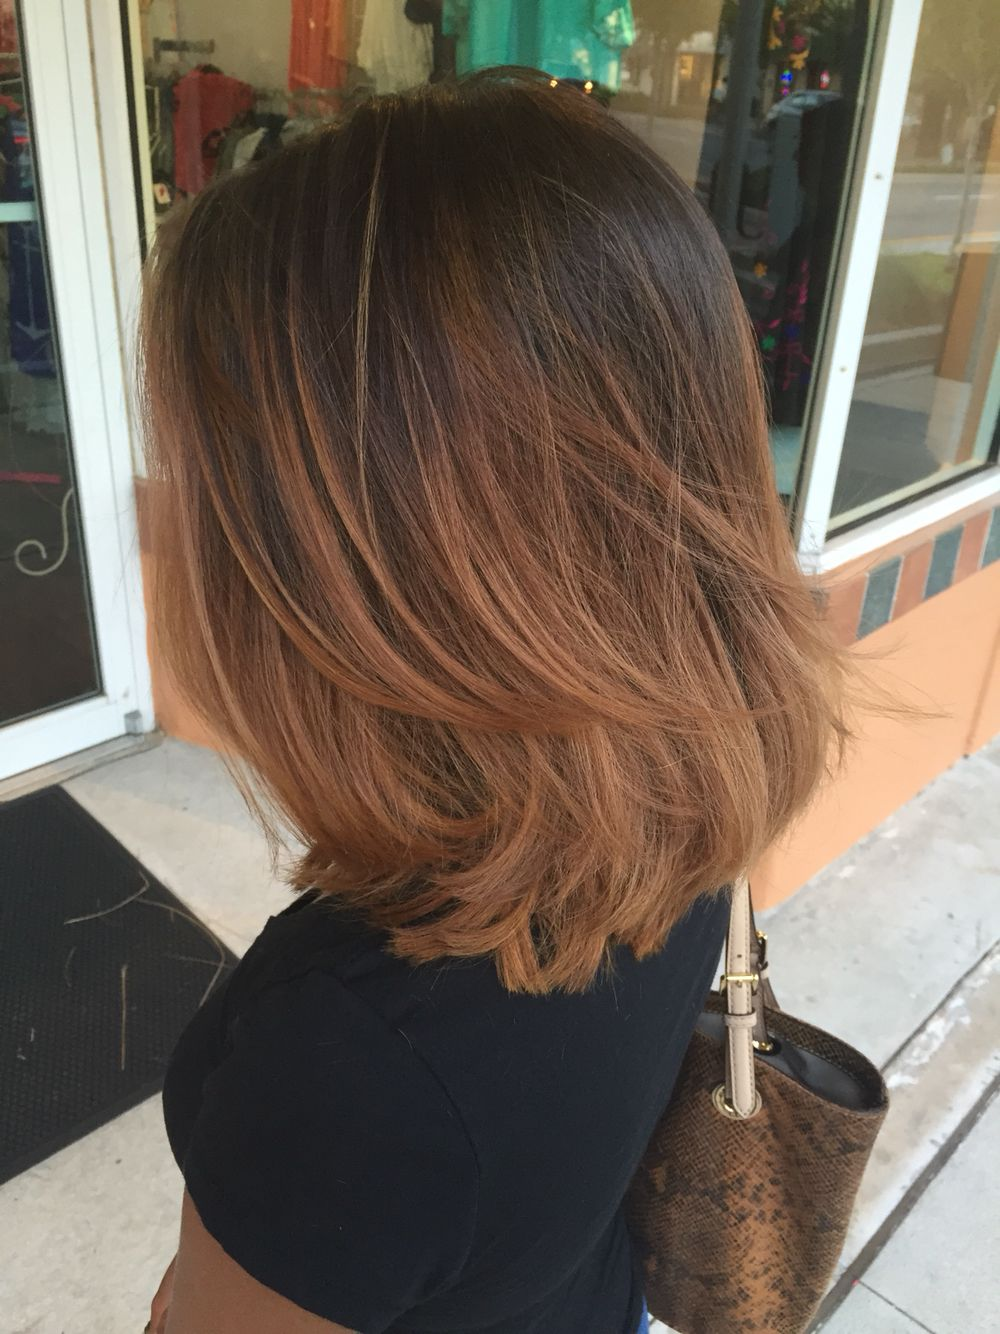 short bob haircut pinterest best 25 hair with layers ideas on 6295 | e8358ab7629c4a10f6ab62d919e78aca